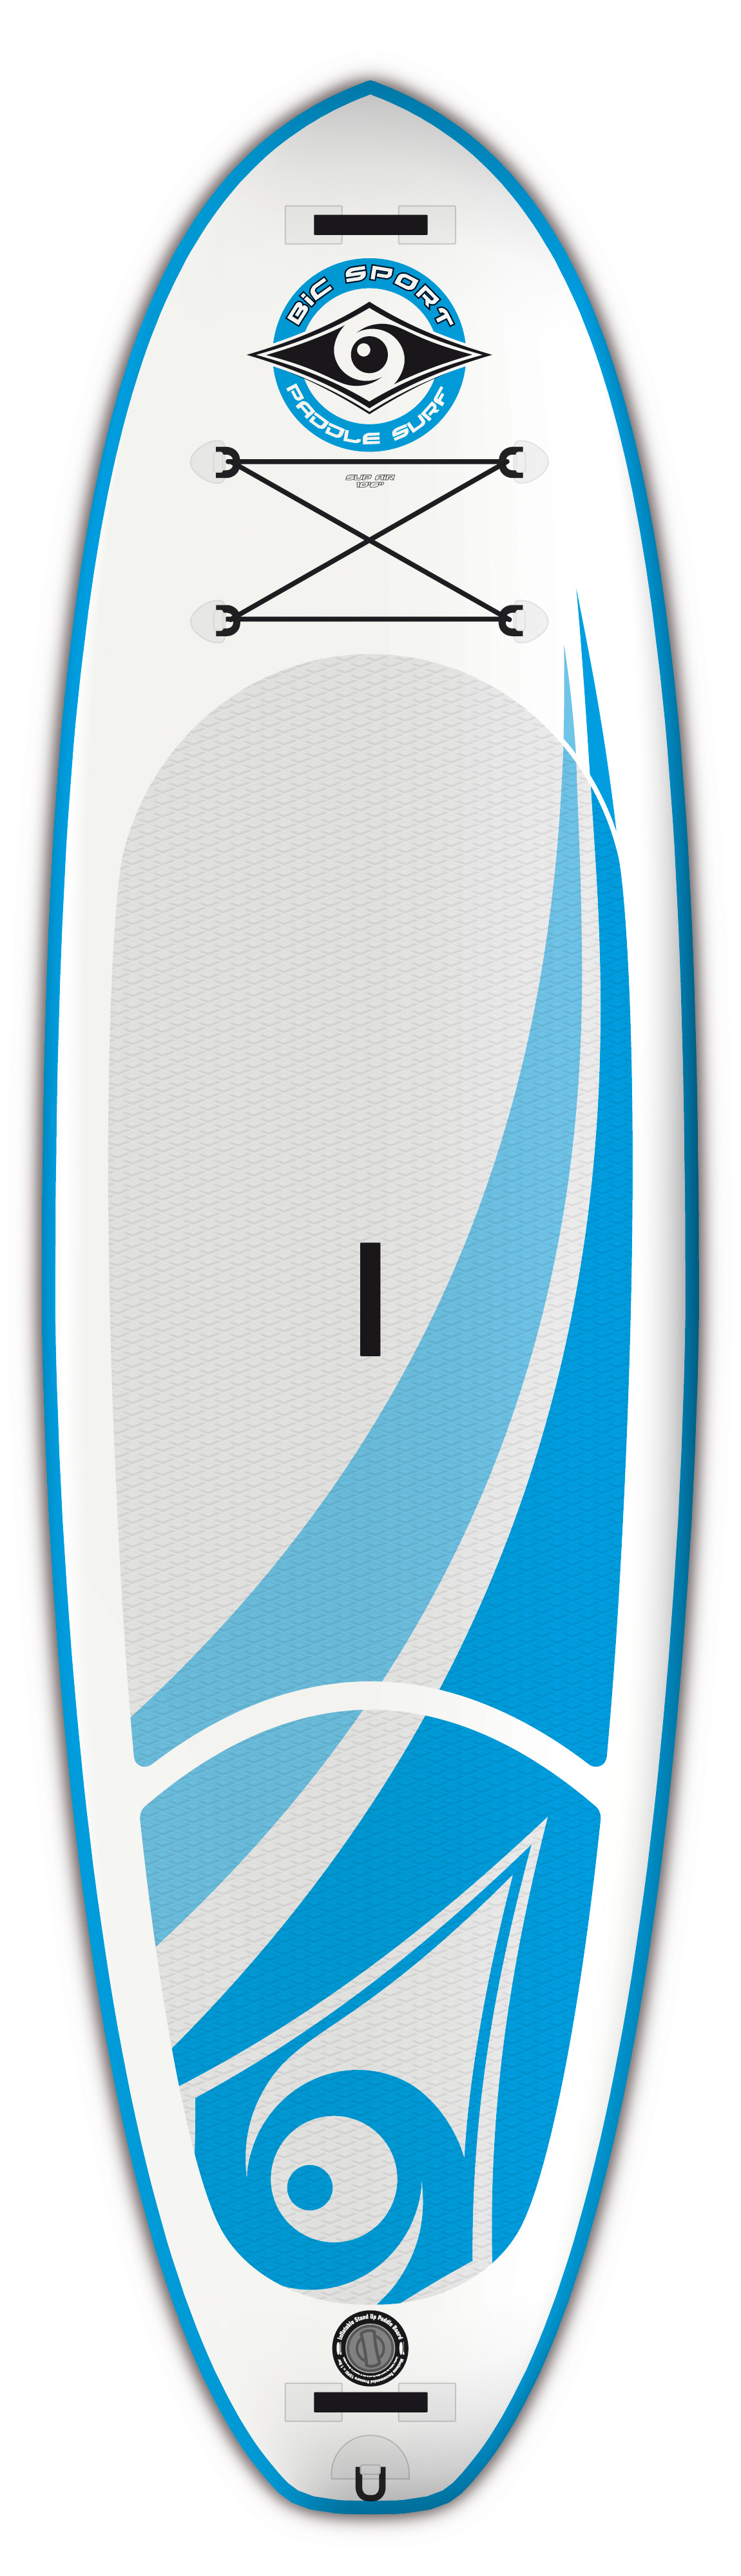 Bic sup air fitness 10´6